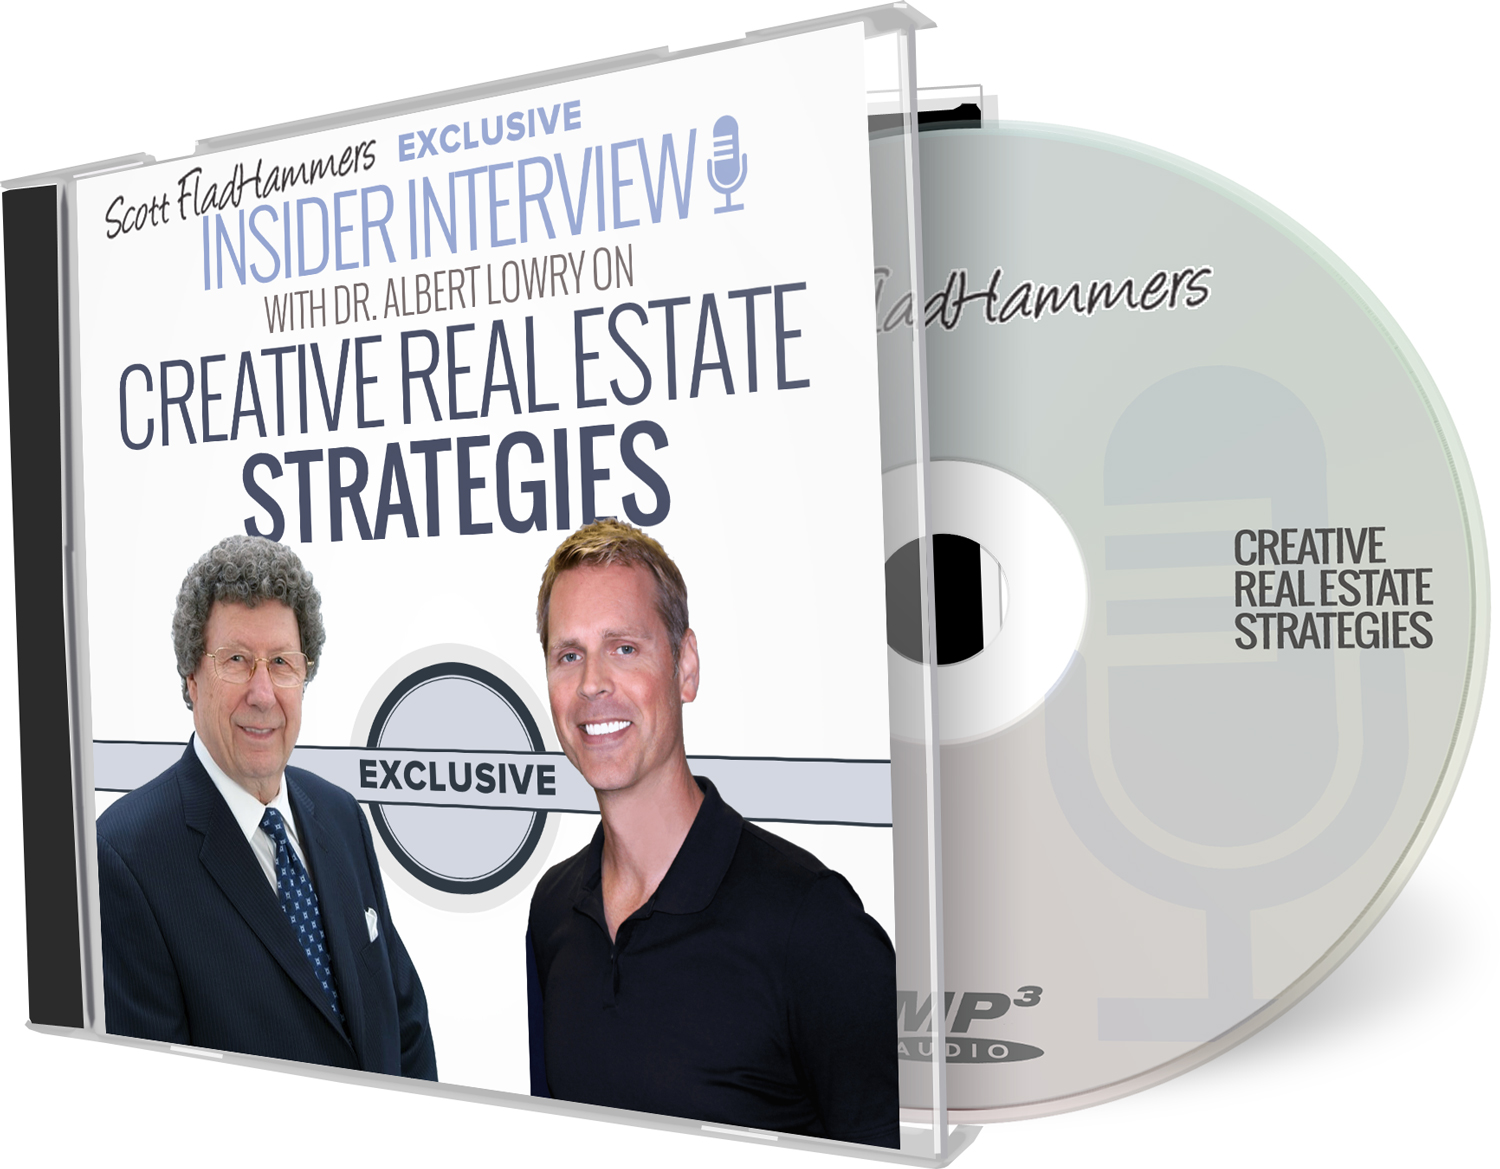 How to Use Creative Seller Financing To Make Huge Profits Buying Selling Real Estate In Any Market by Scott FladHammer